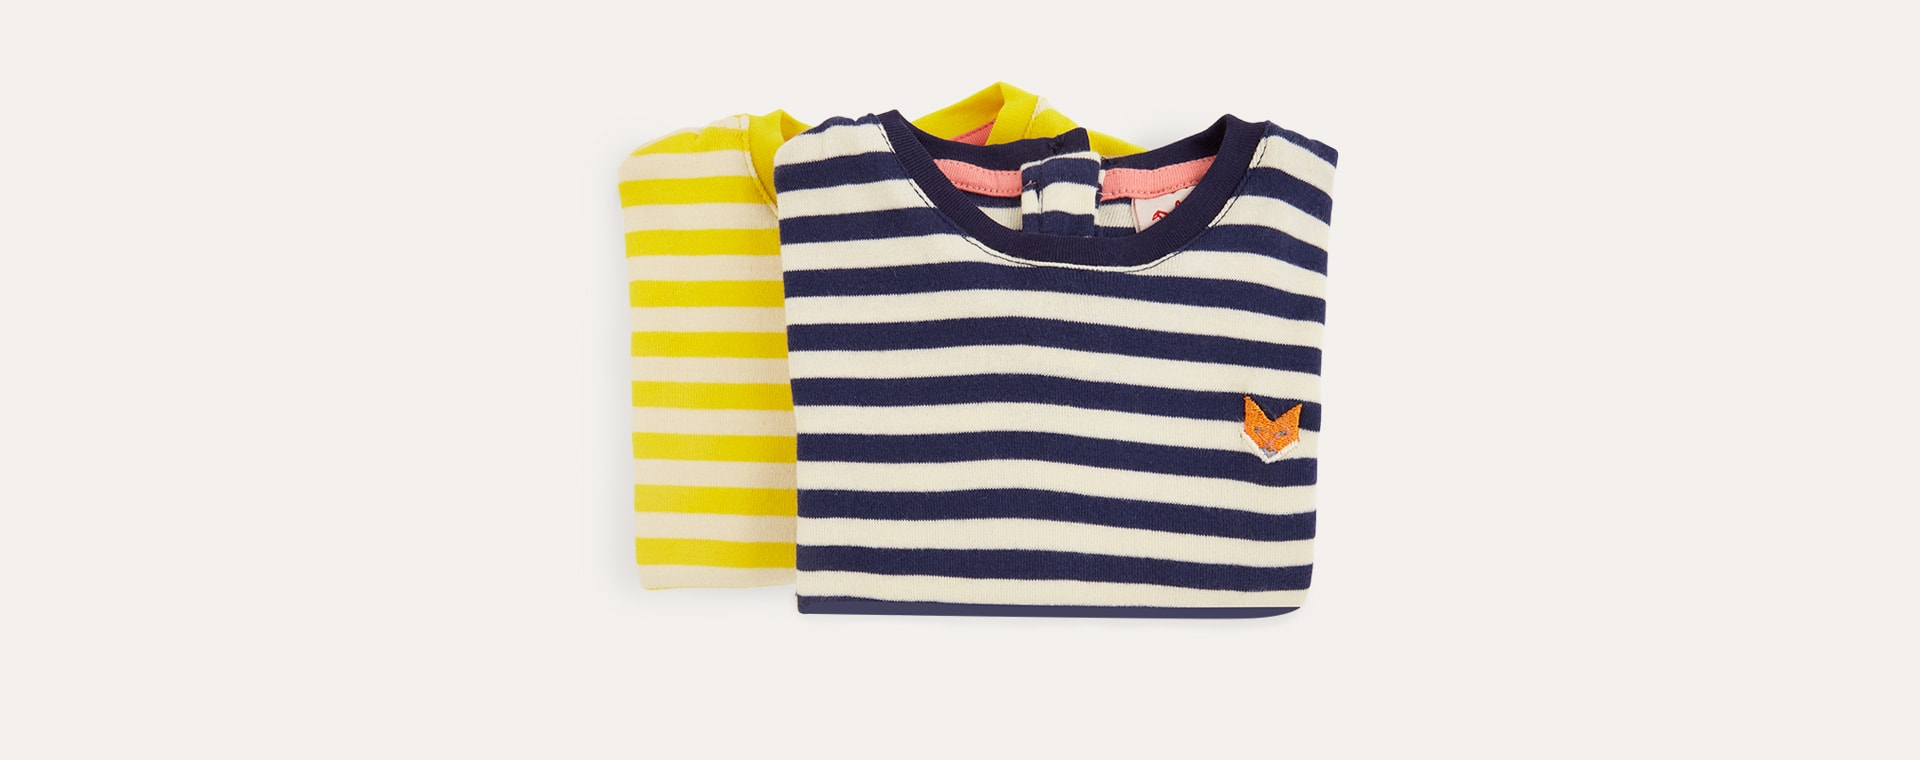 Sun/Navy Tootsa Striped Long Sleeve Tops 2 Pack